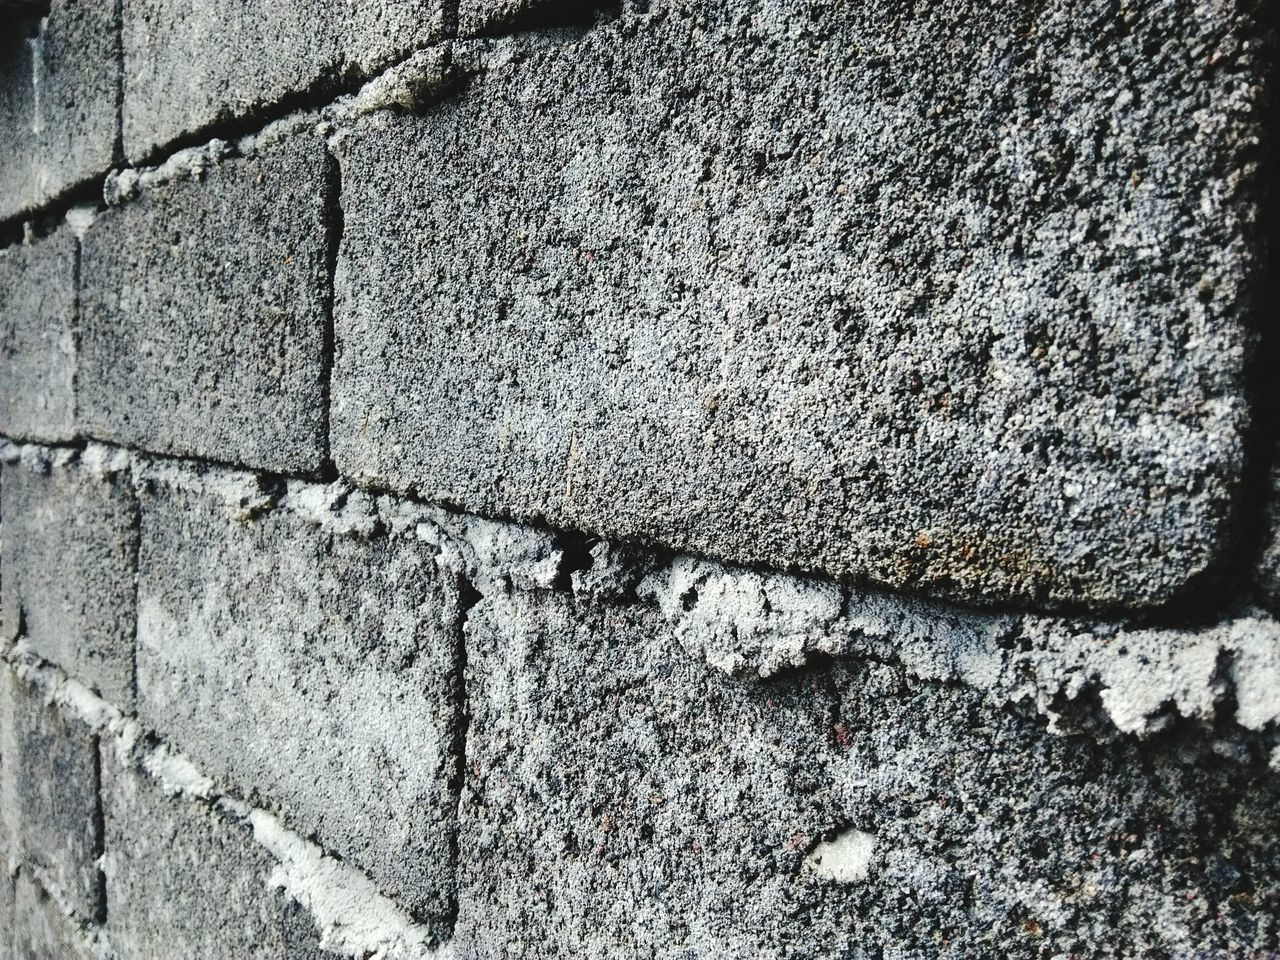 wall - building feature, textured, rough, built structure, architecture, close-up, weathered, day, no people, backgrounds, outdoors, building exterior